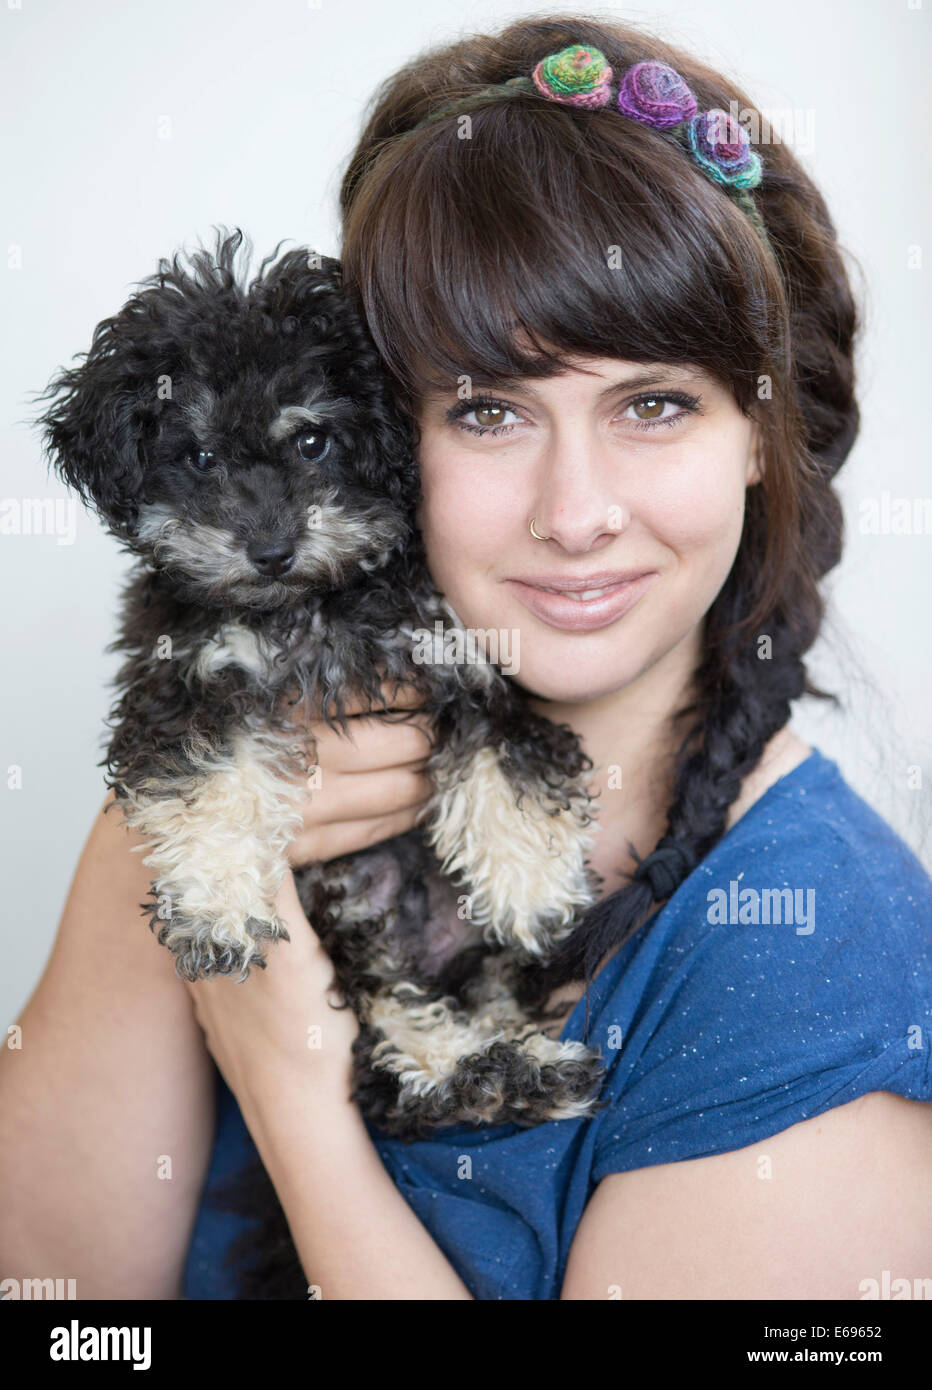 Young woman holding a Toy Poodle, or Teacup Poodle, black